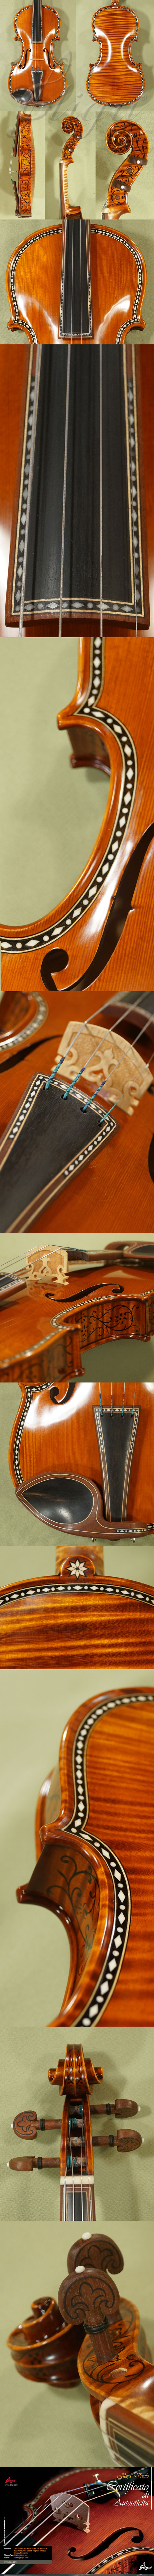 4/4 MAESTRO VASILE GLIGA Rare White Bone and Ebony Inlaid Purfling One Piece Back Violin Ciprian